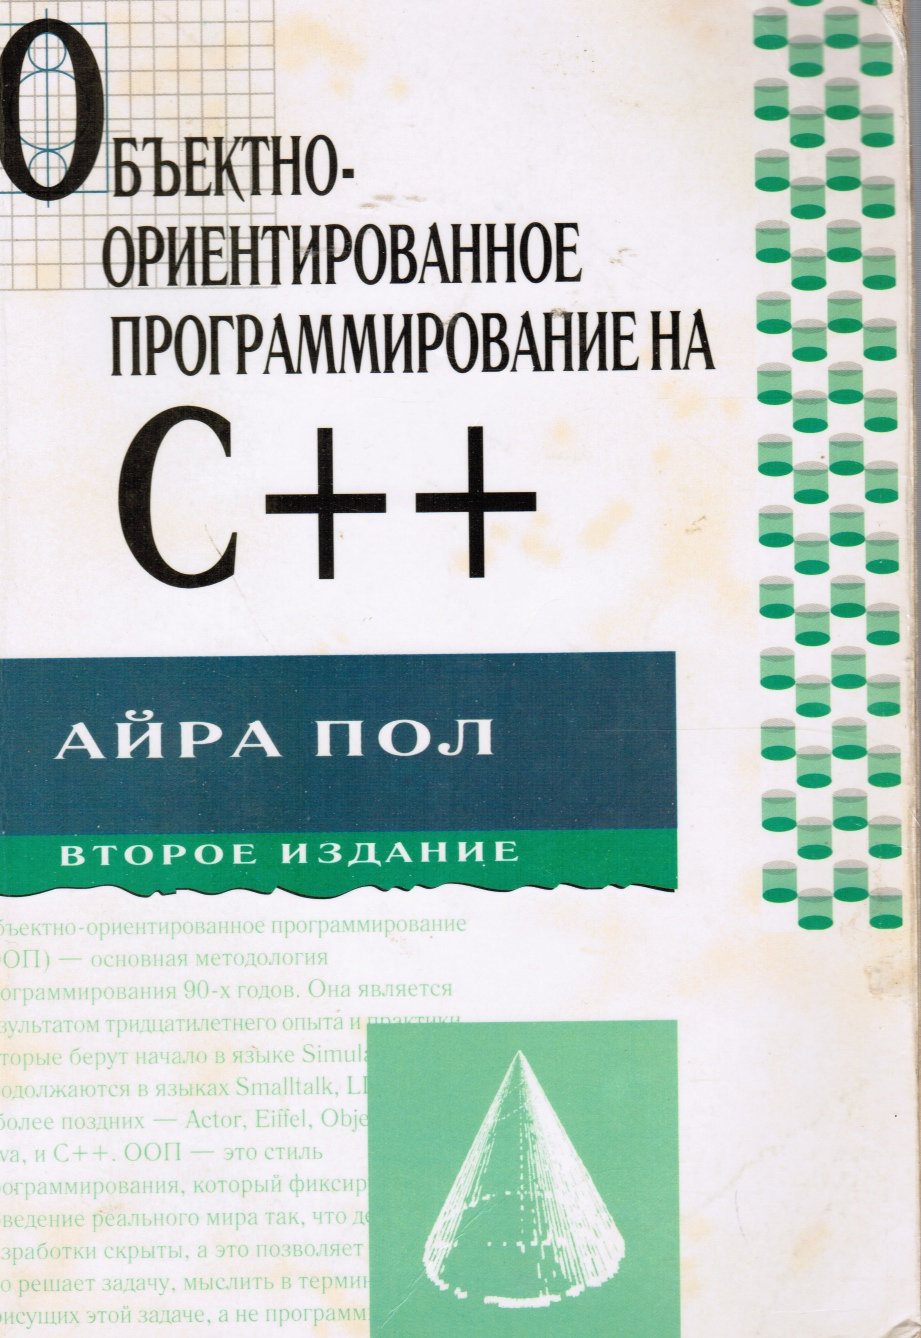 Image for Object-Oriented Programming Using C++ Russian Language Version